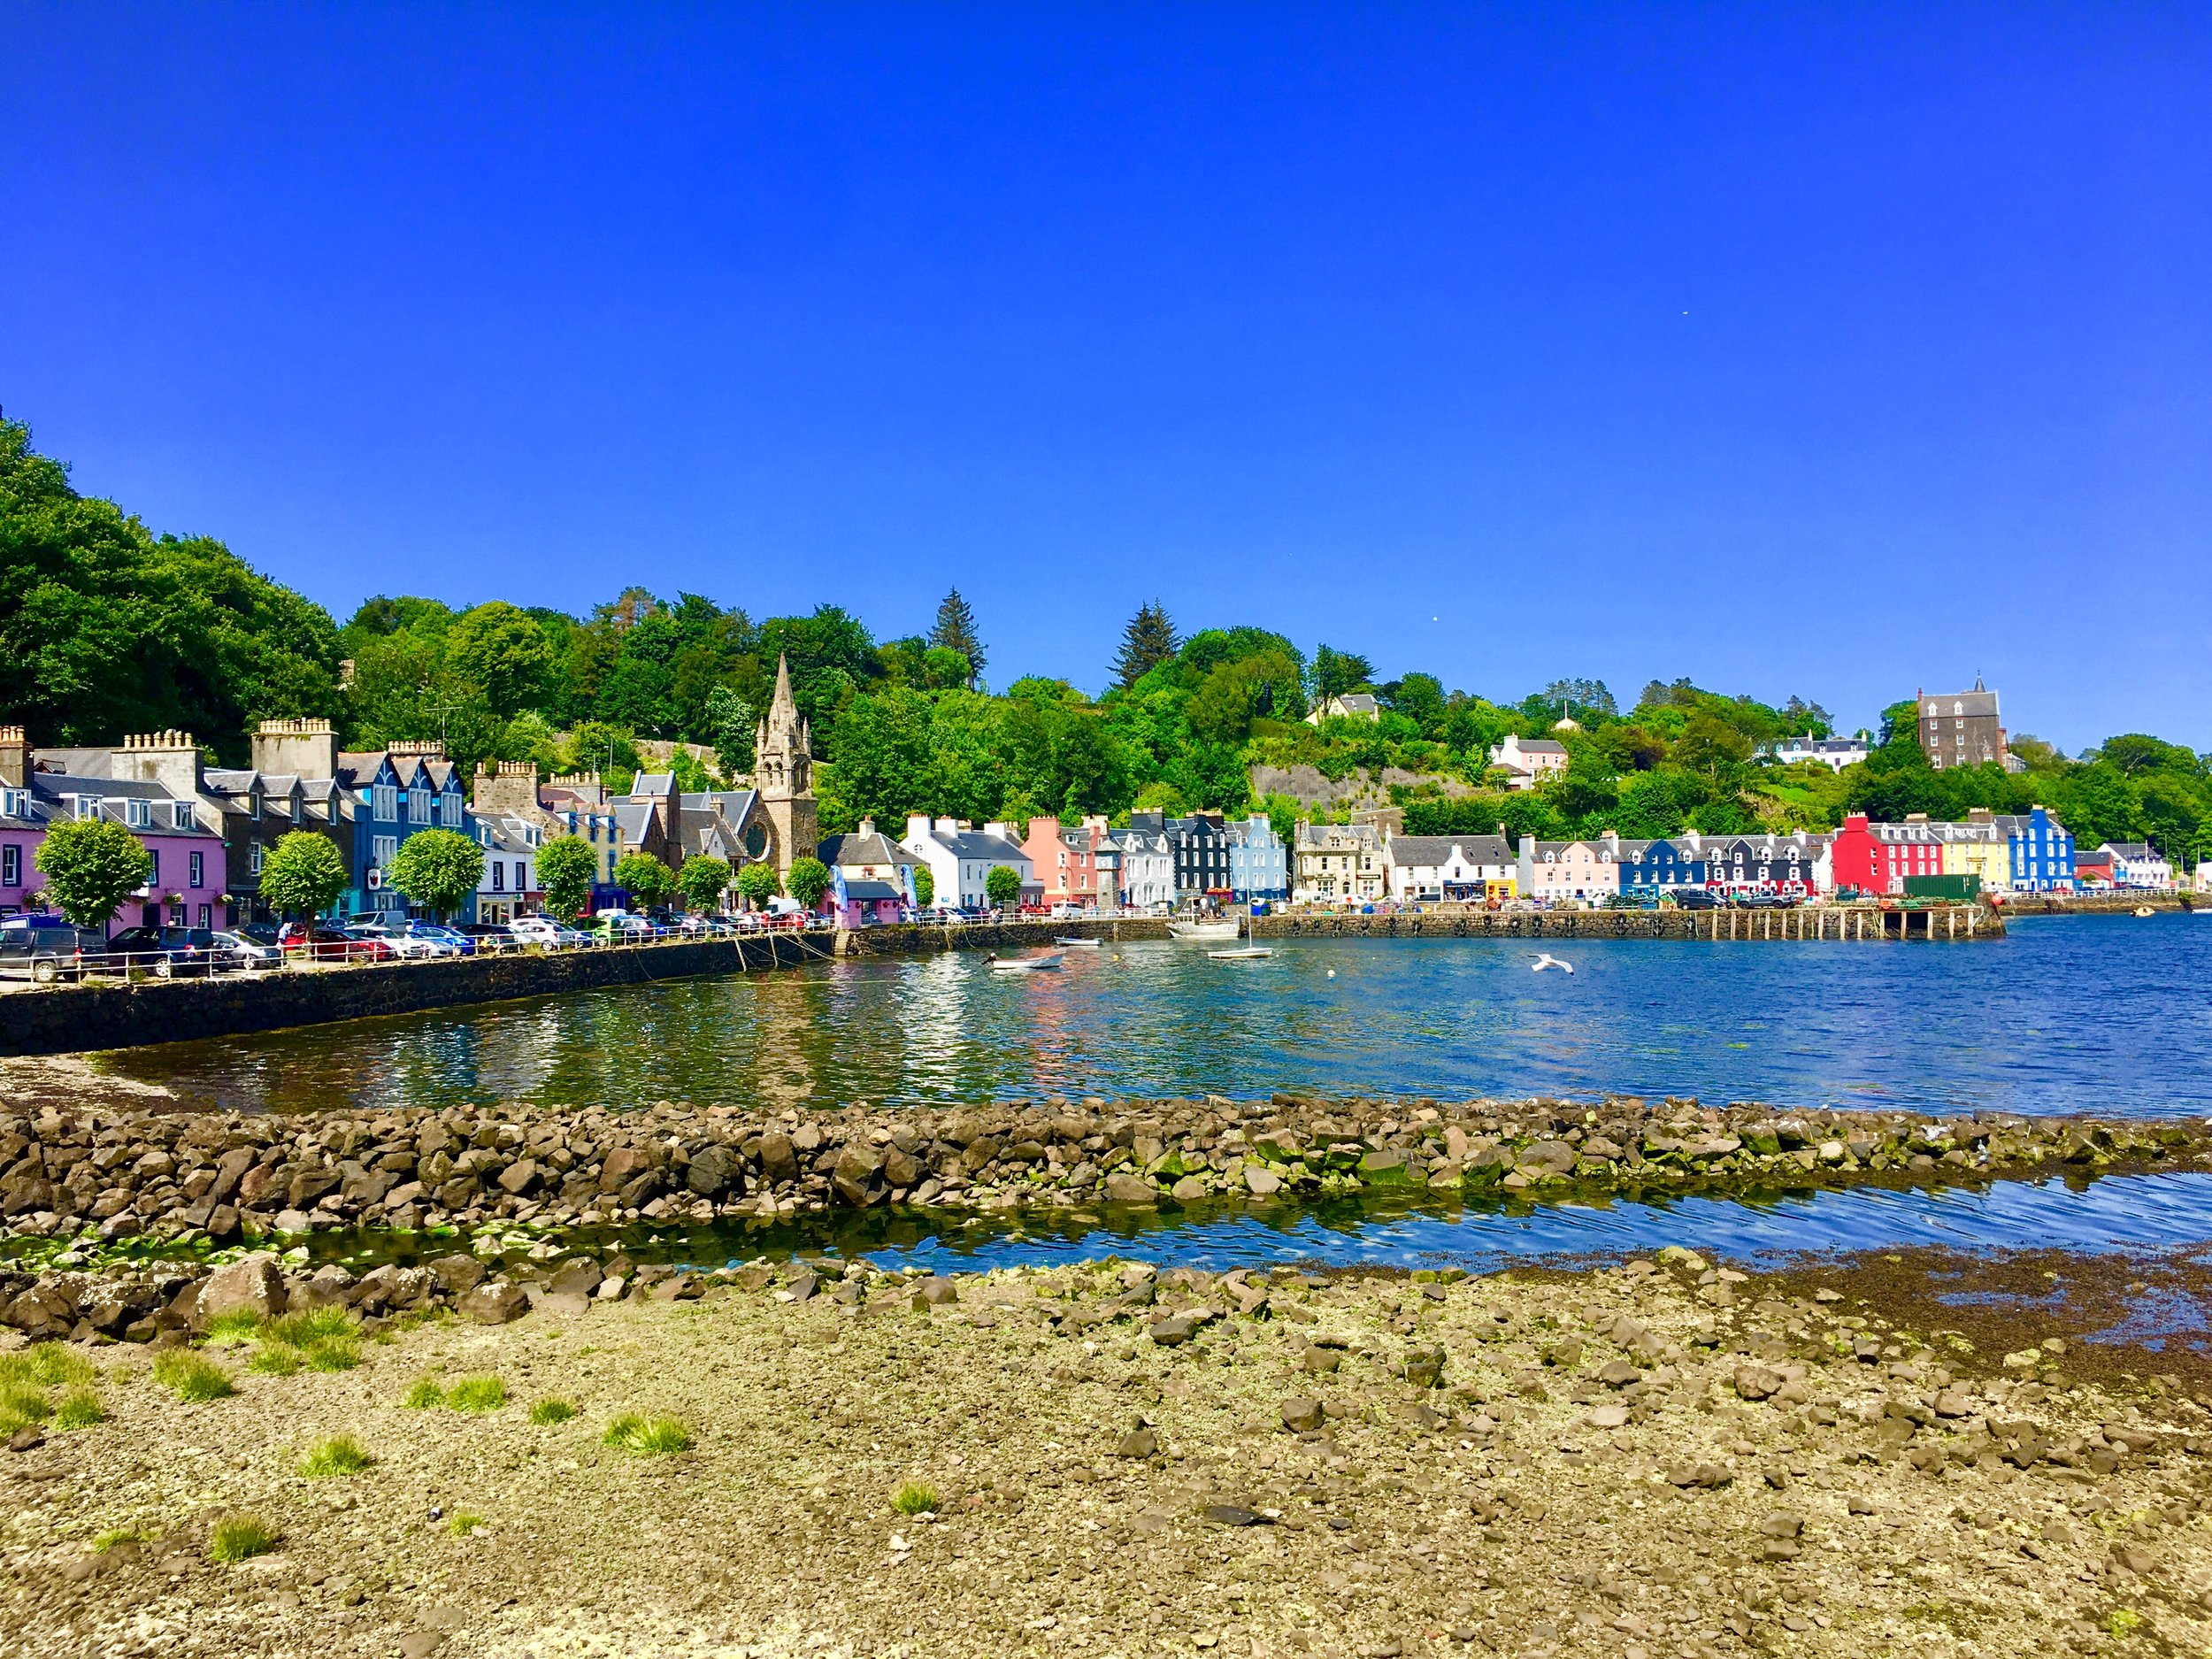 The picturesque town of Tobermory on the Isle of Mull, Scotland.